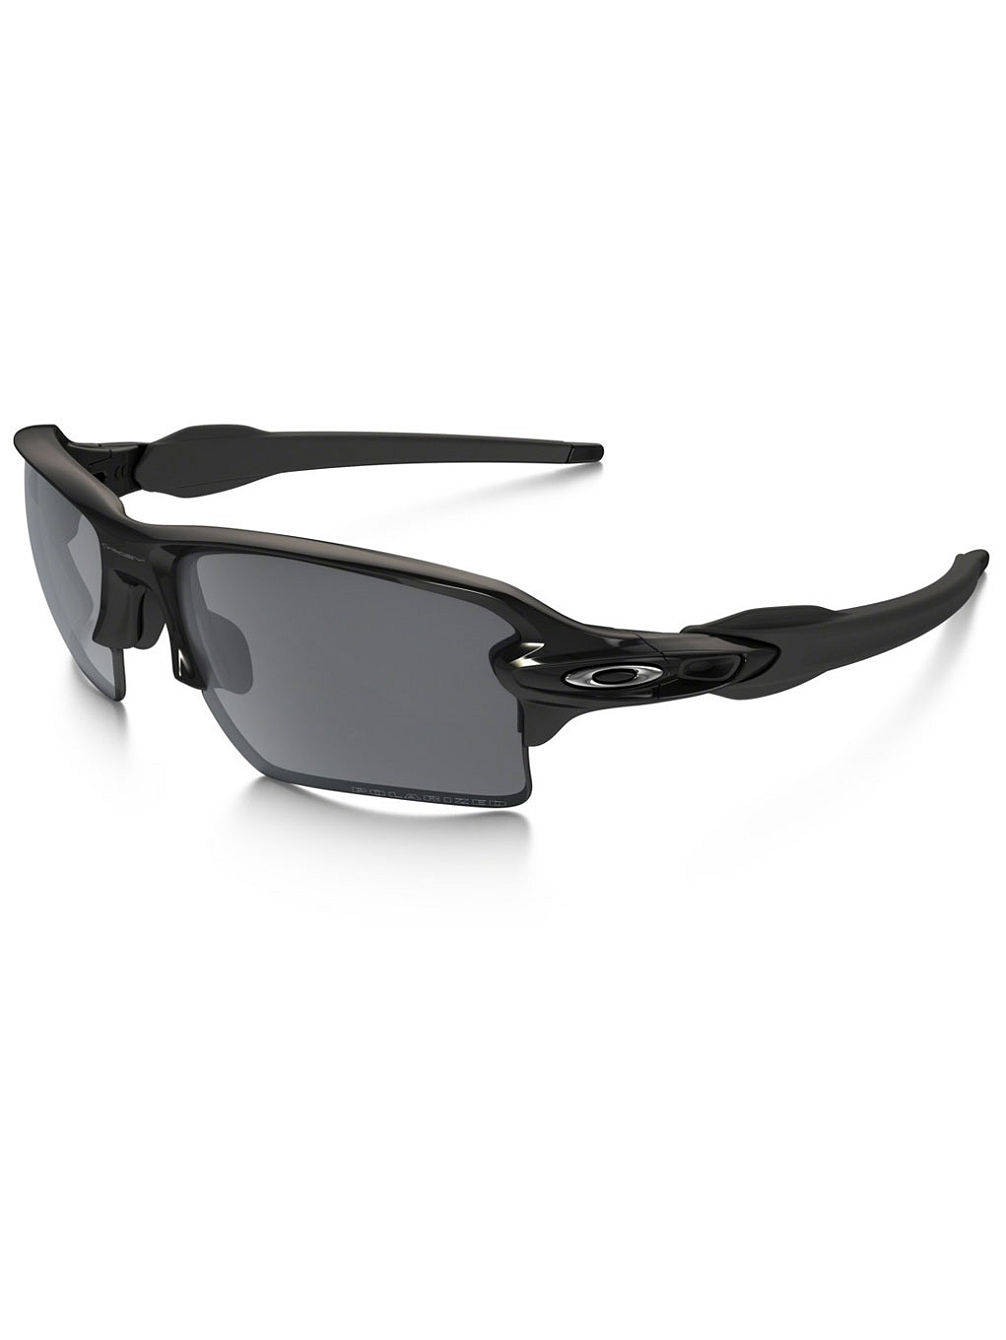 Flak 2.0 Xl Polished Black Sonnenbrille